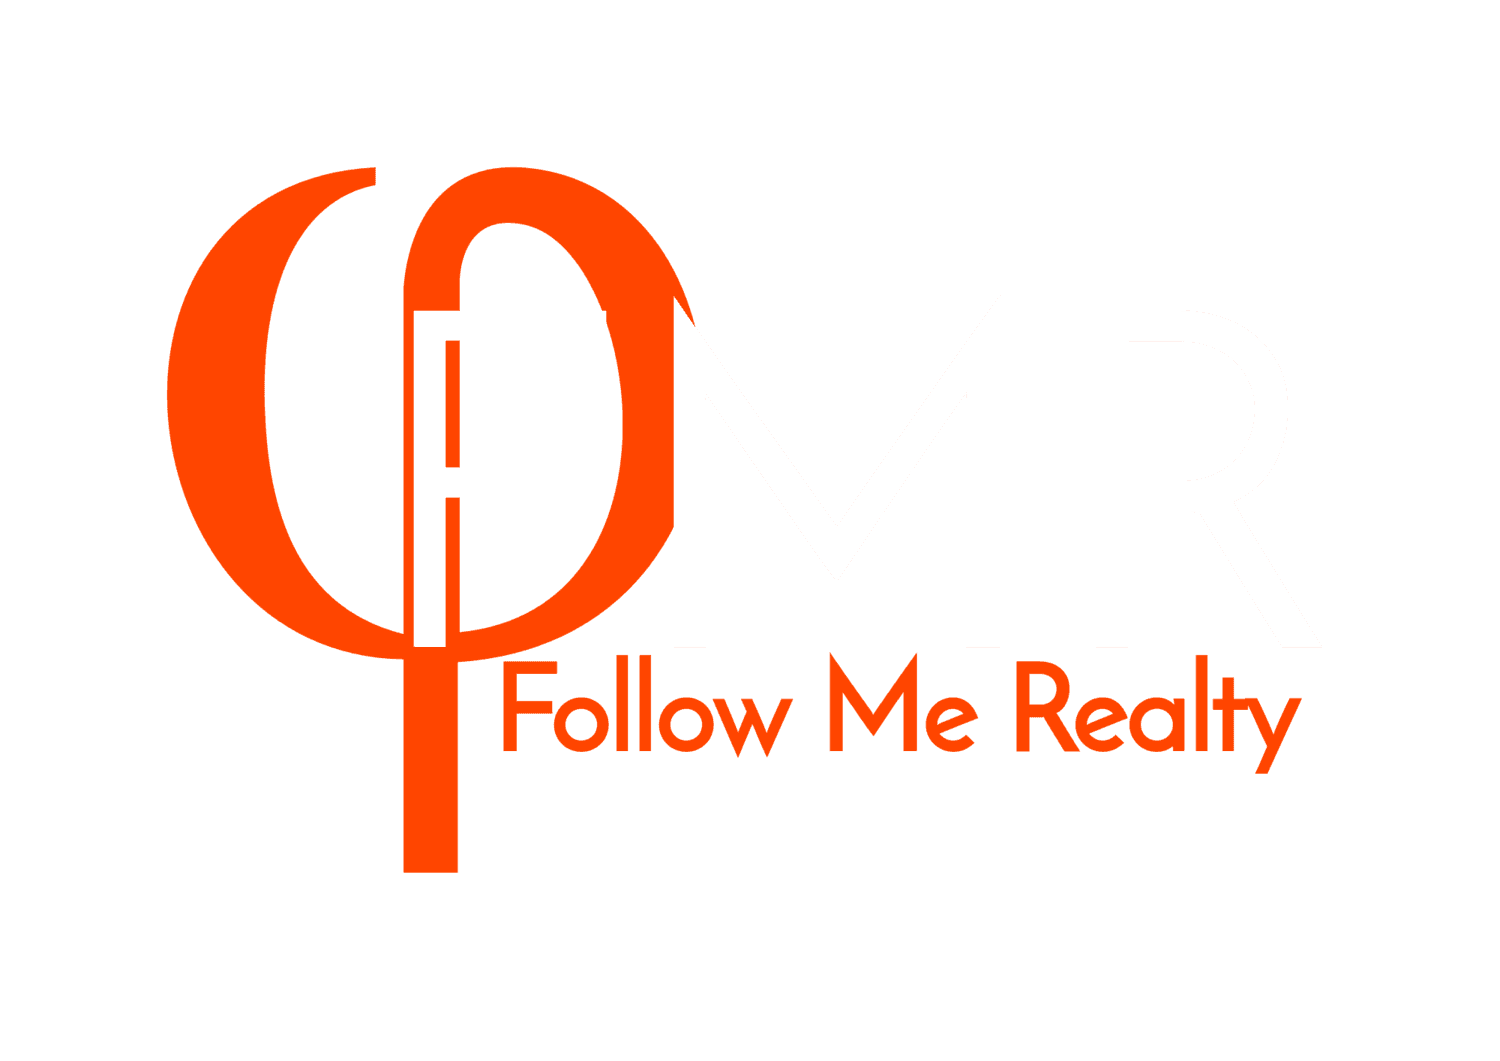 Follow Me Realty |The Smart Brokerage